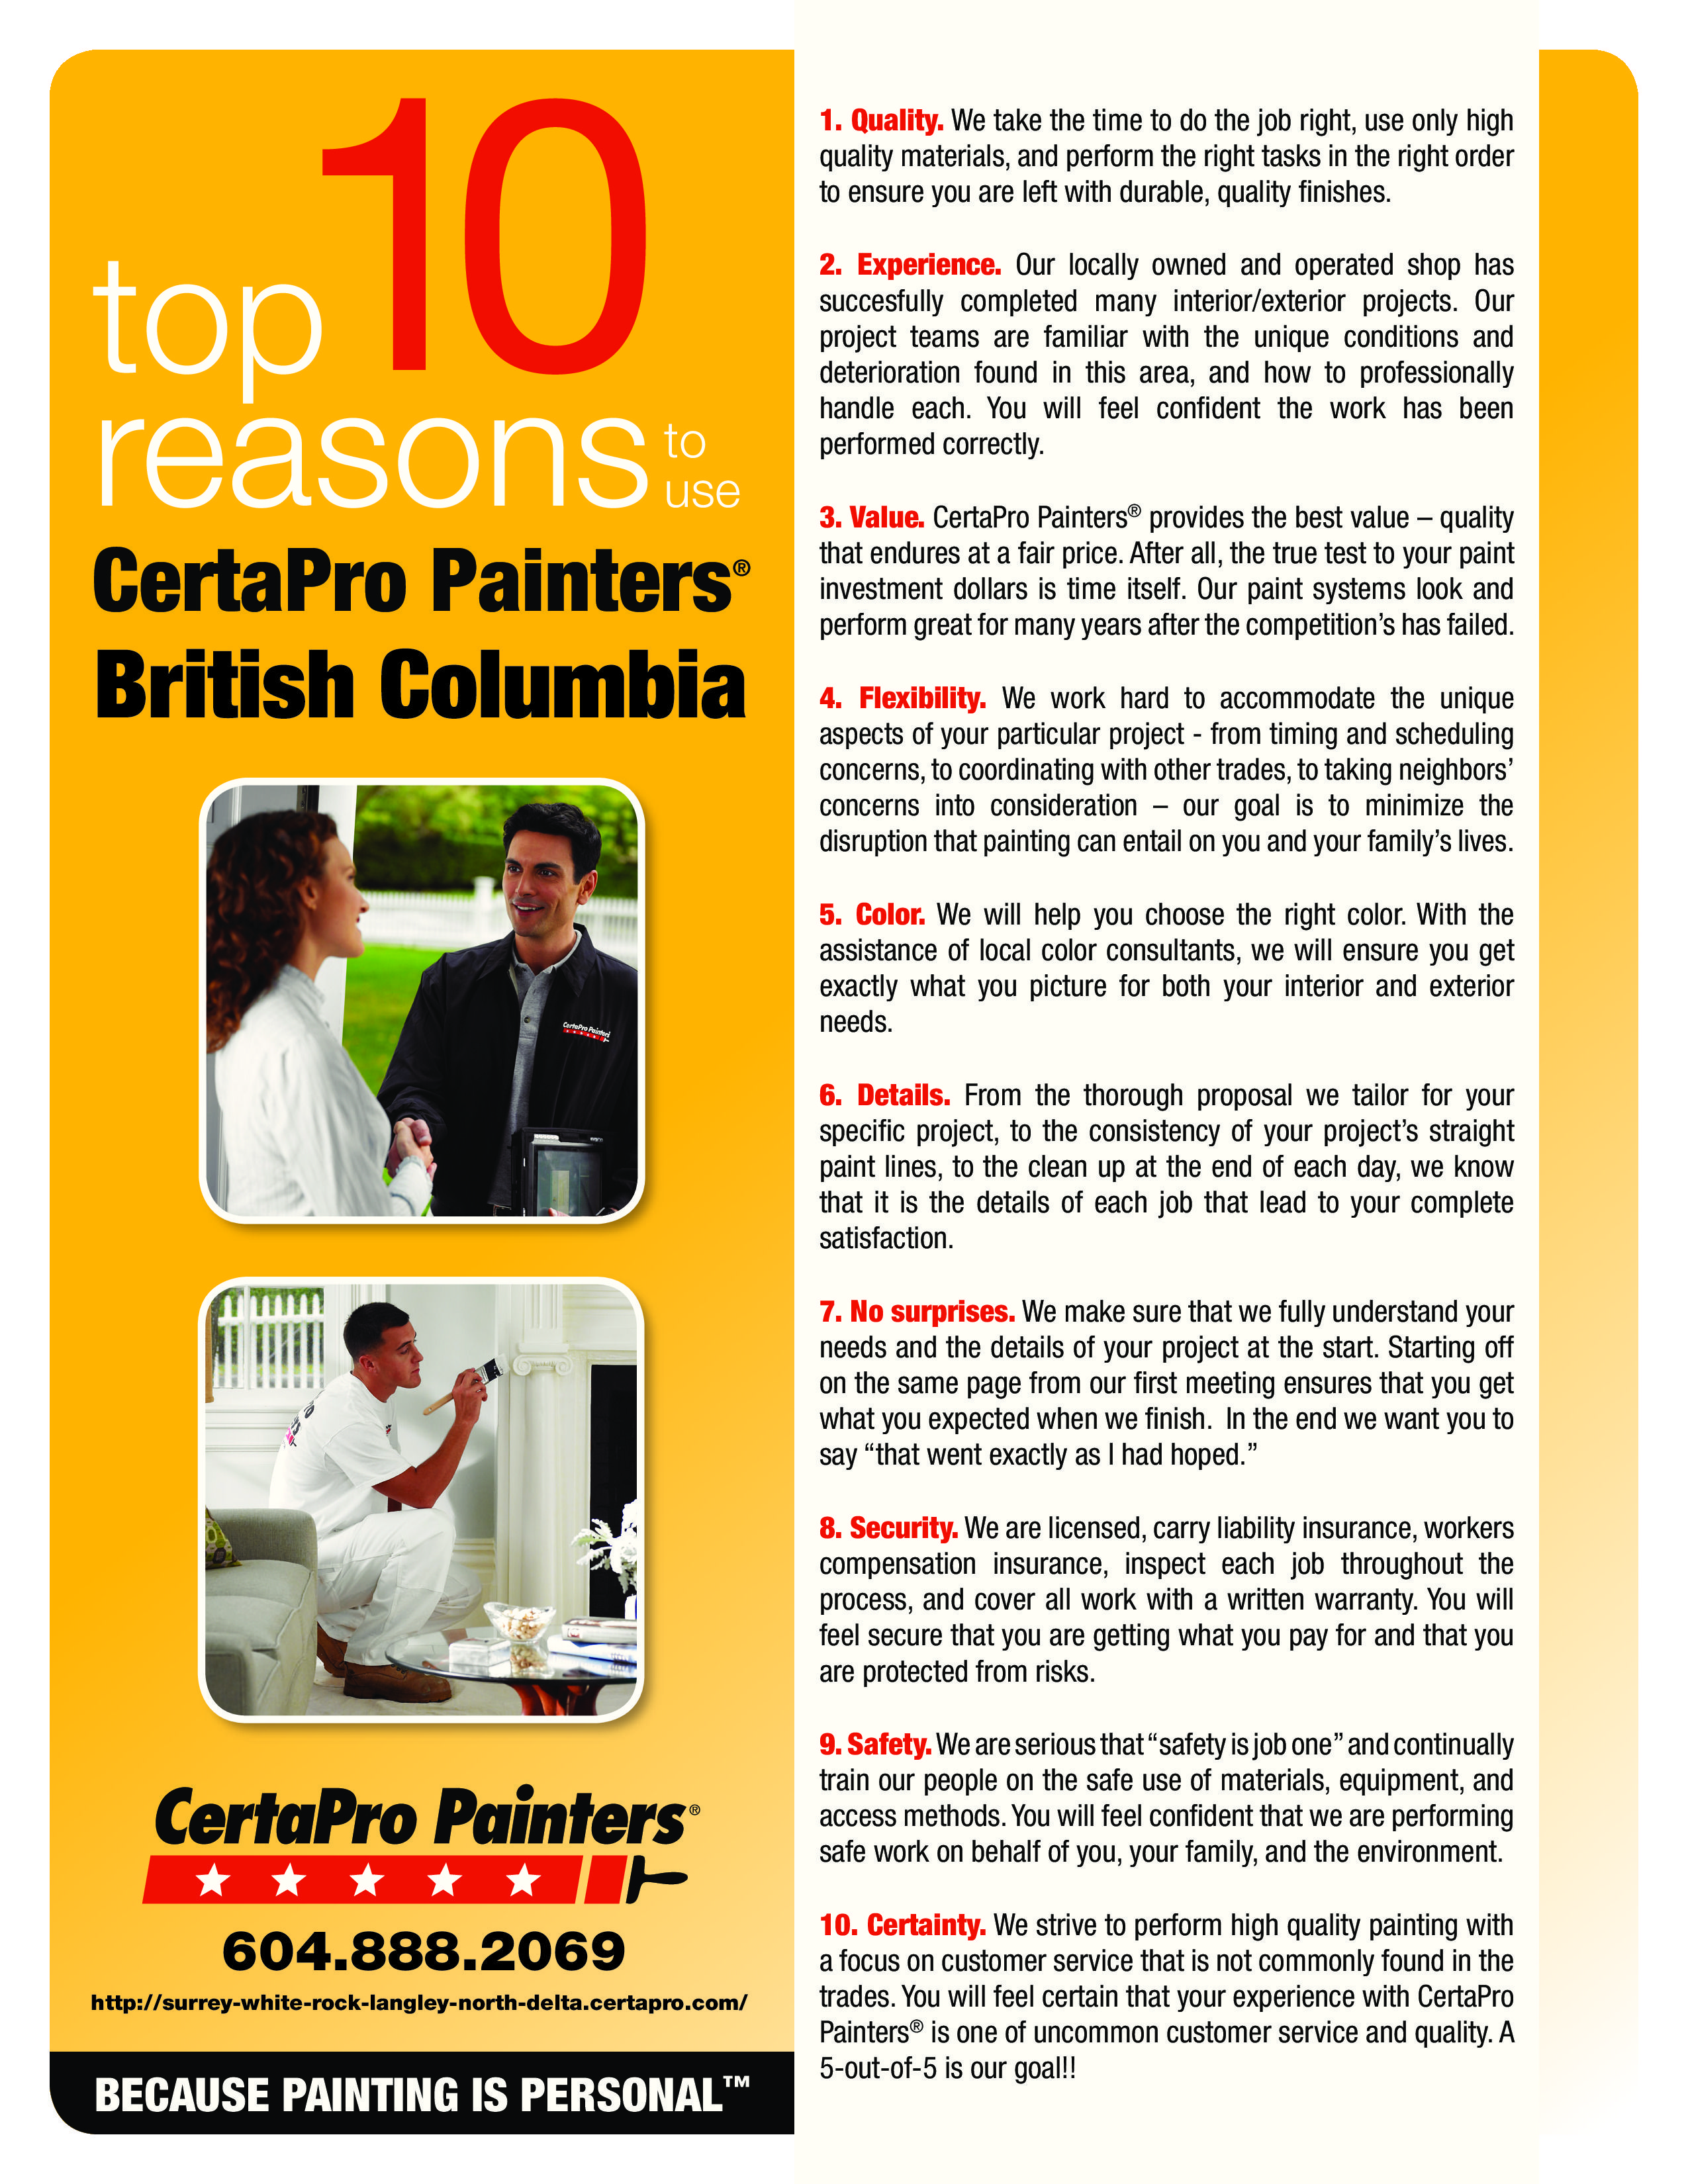 Top 10 Reasons to Choose CertaPro Painters | The CertaPro